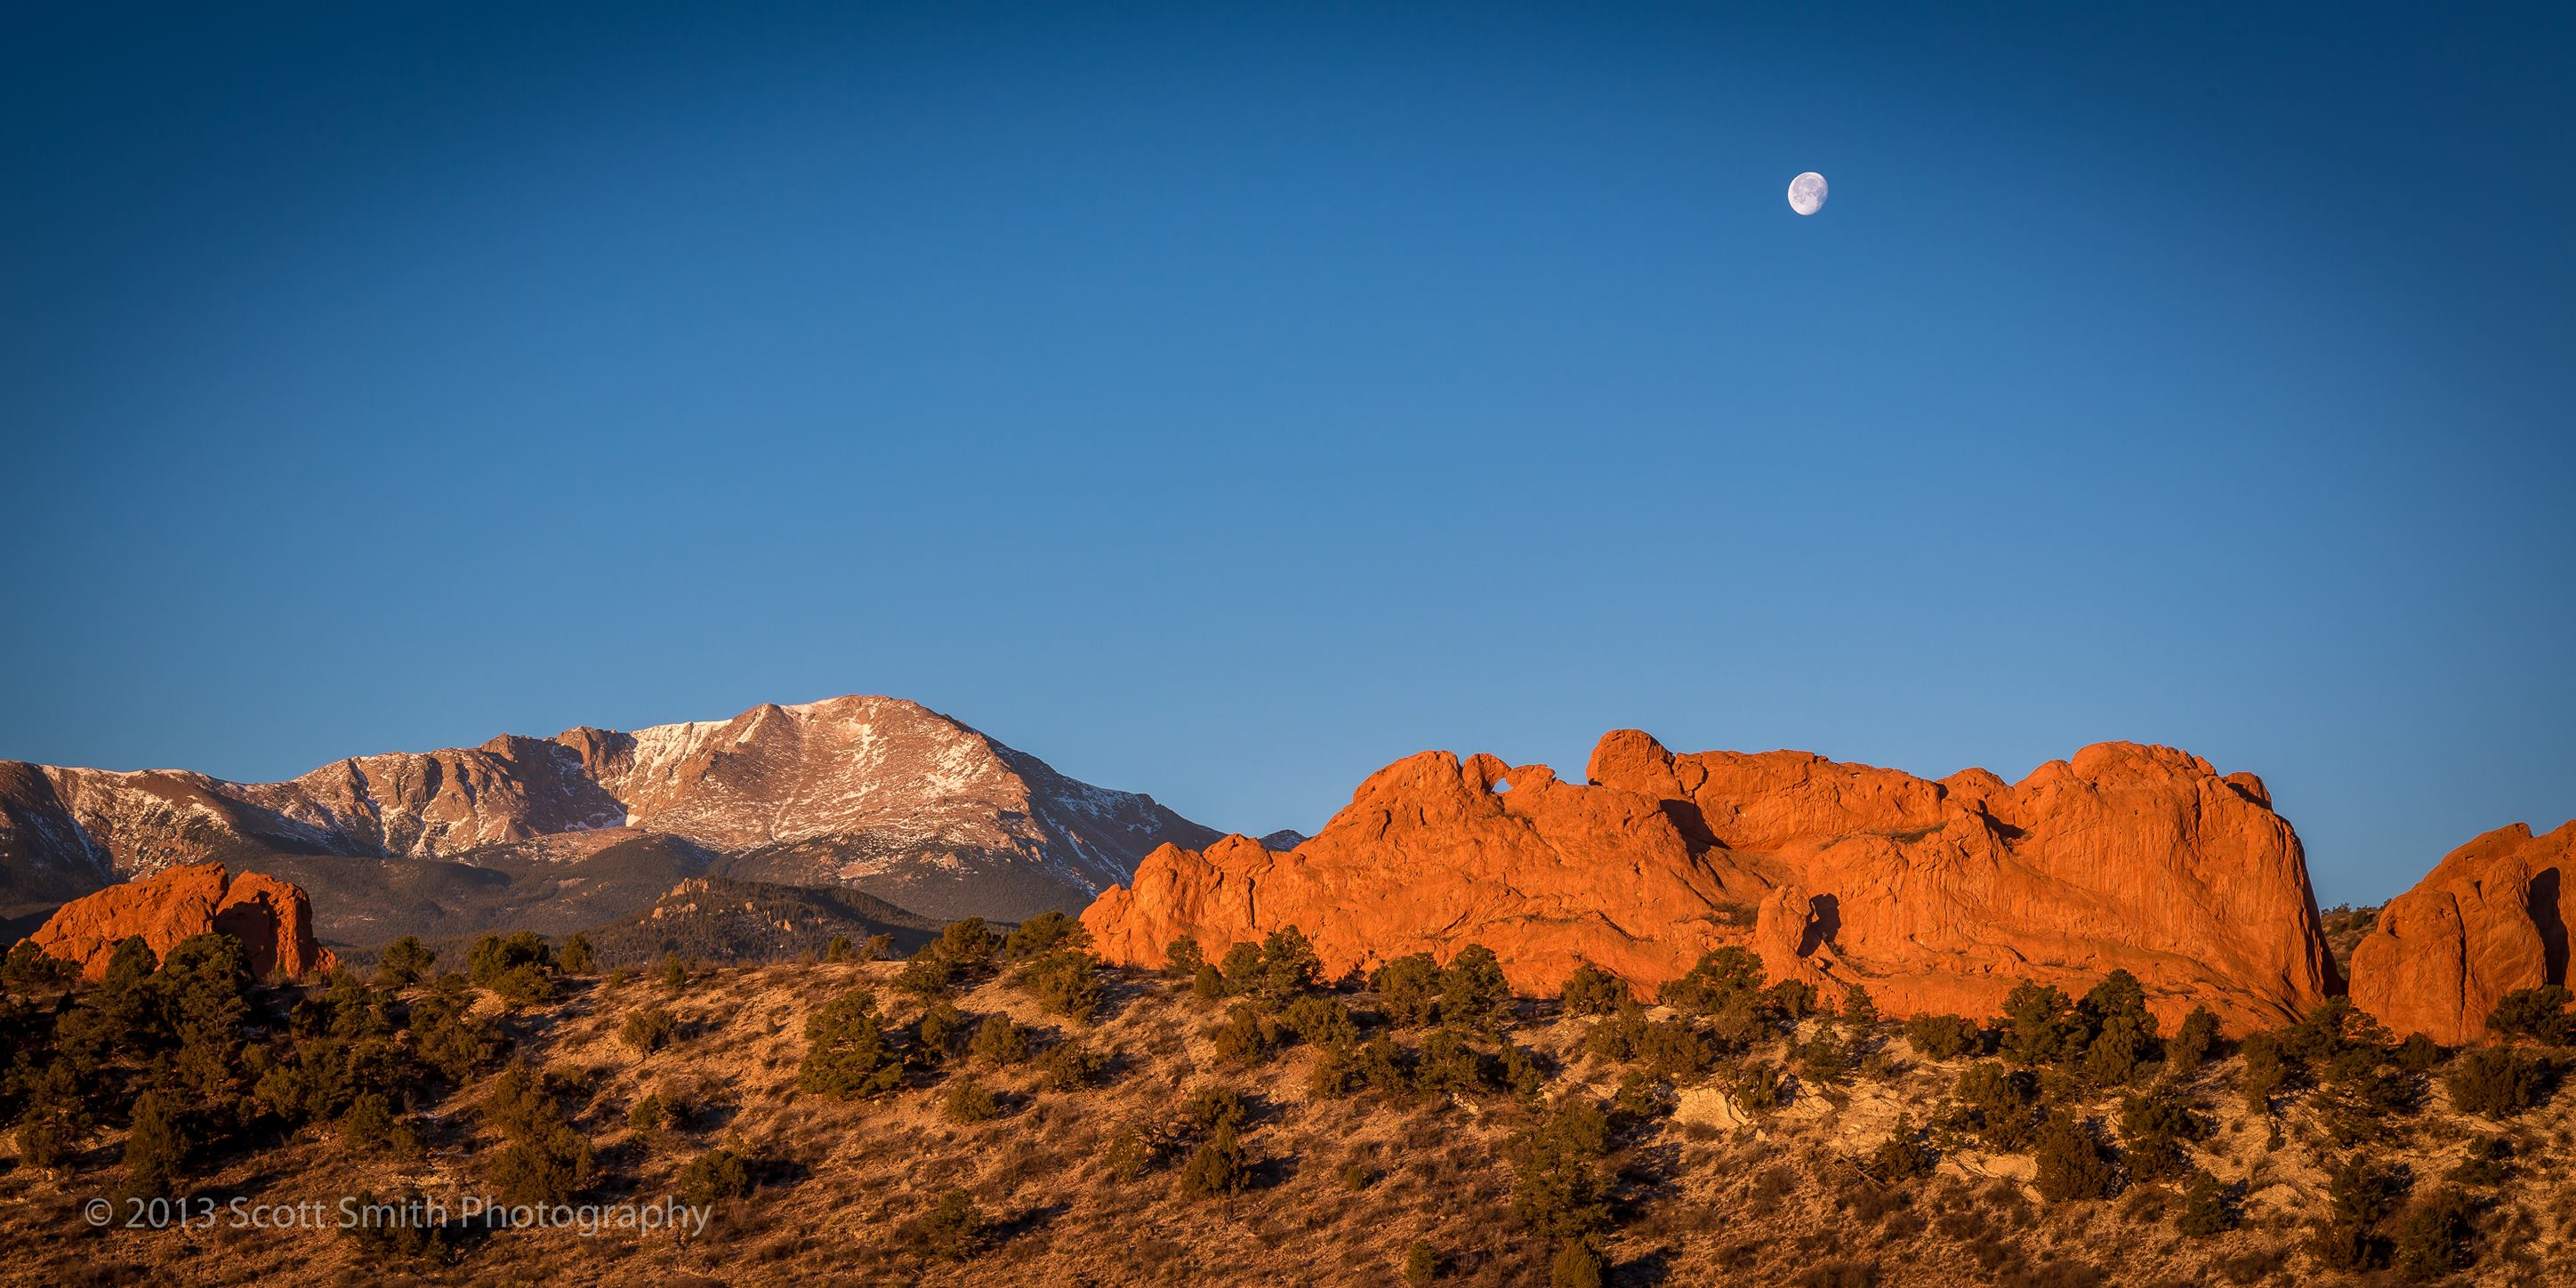 Sun Rising, Moon Setting - The moon sets as the morning sun lights up the Garden of the Gods and Pike's Peak in Manitou Springs, Colorado. by Scott Smith Photos